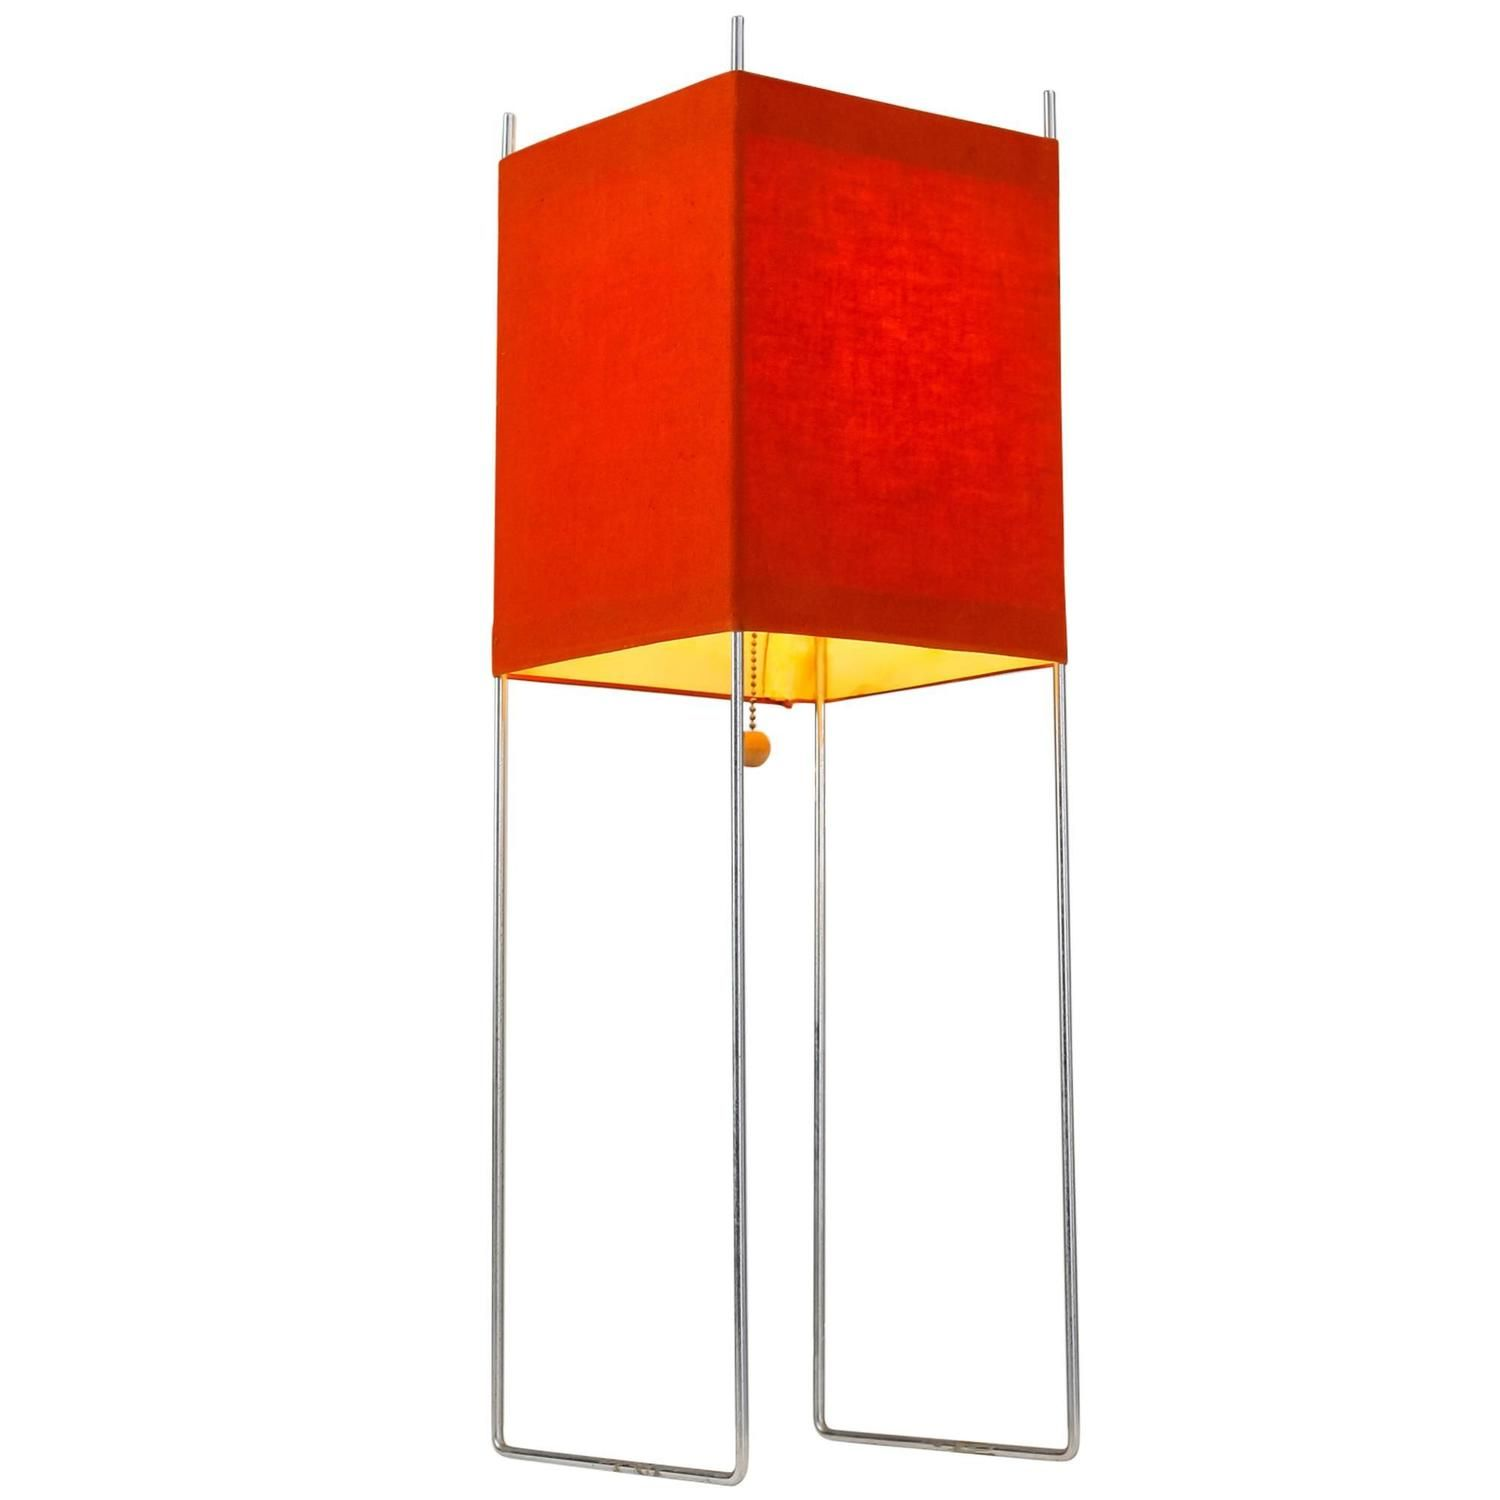 George nelson red kite table or floor lamp usa 1970s red kite george nelson red kite table or floor lamp usa 1970s geotapseo Images